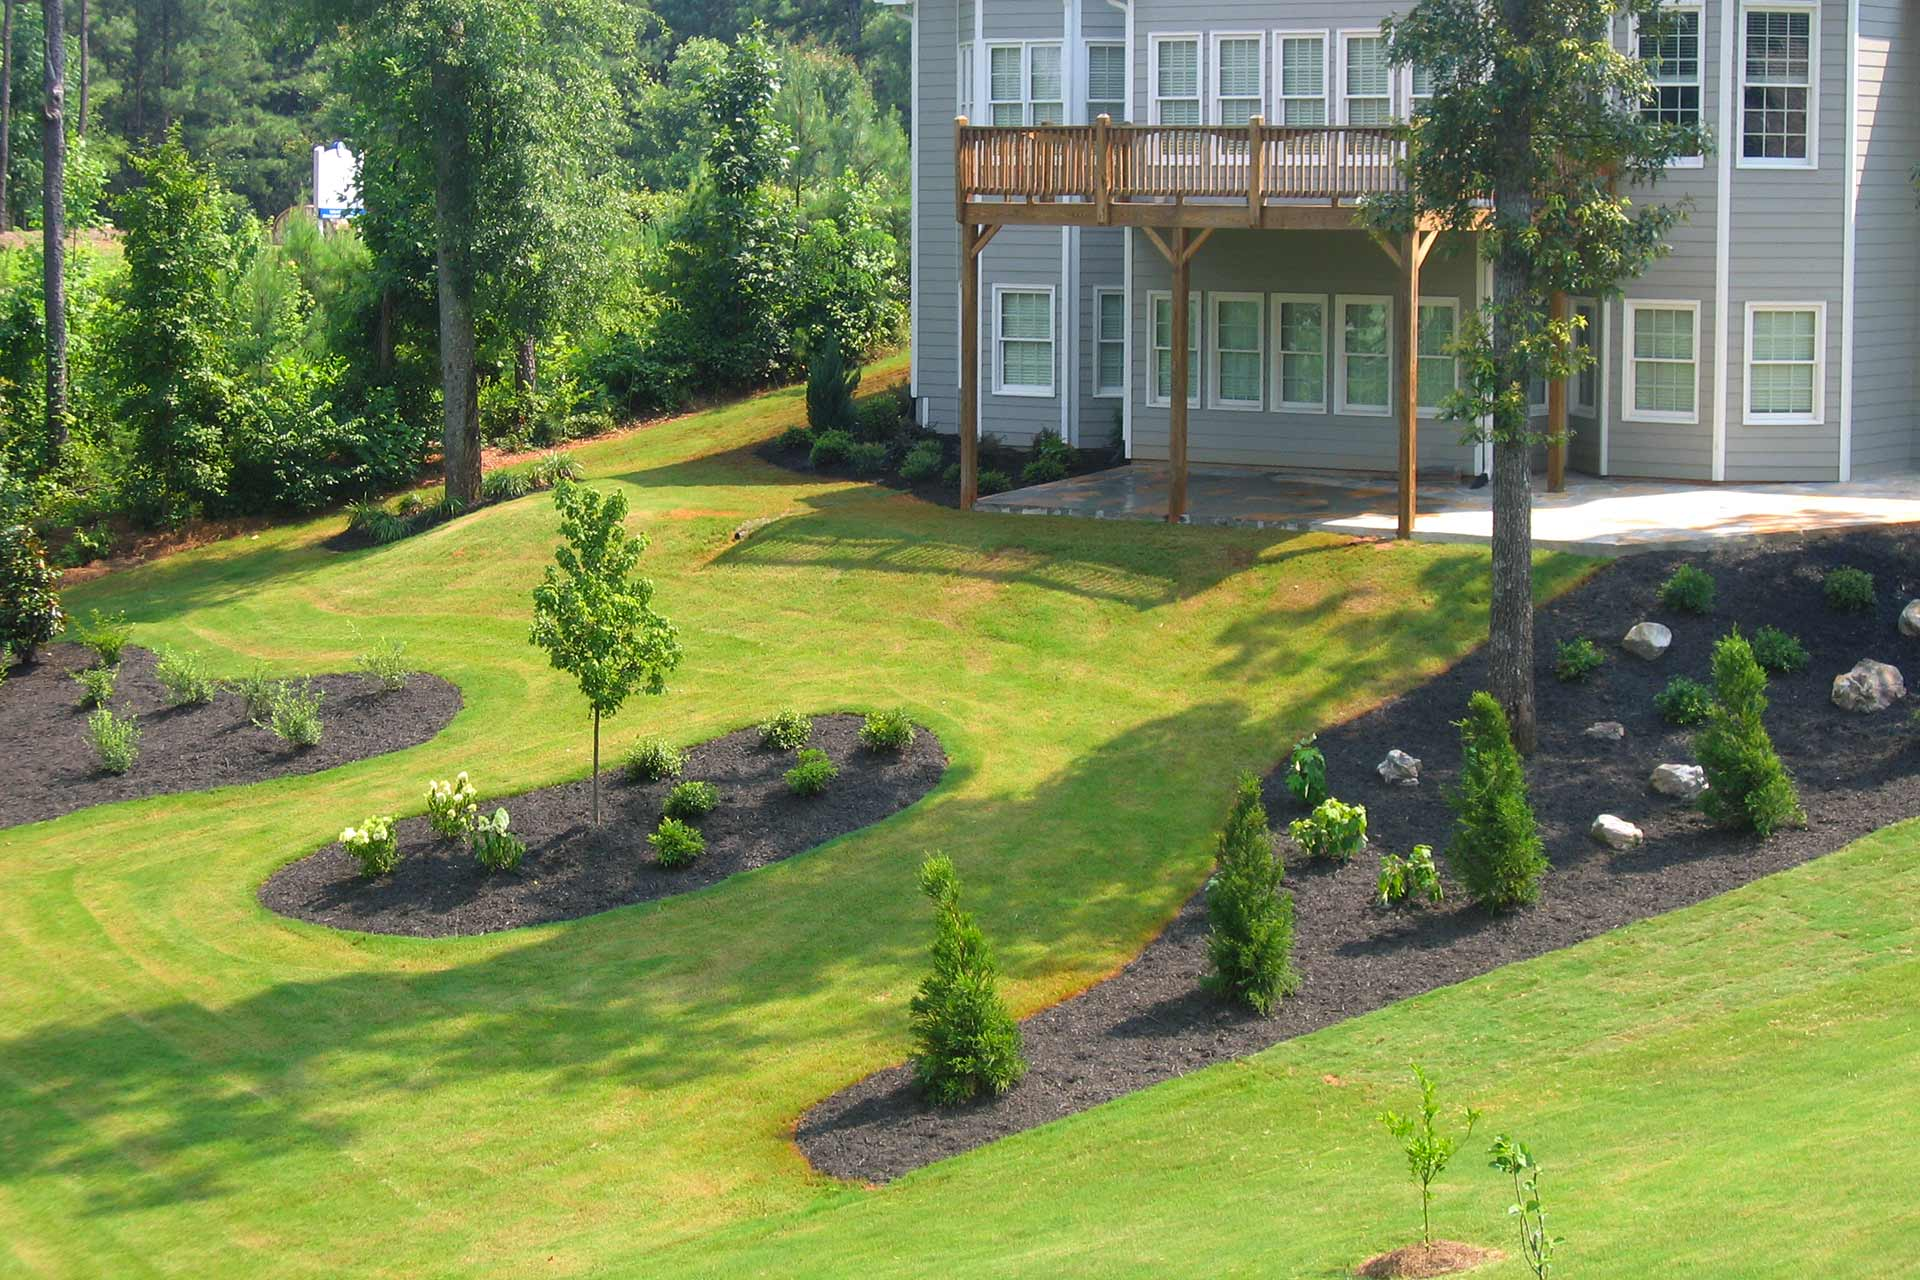 Elevated landscaping and mulch beds at a home property in Buckhead, GA.